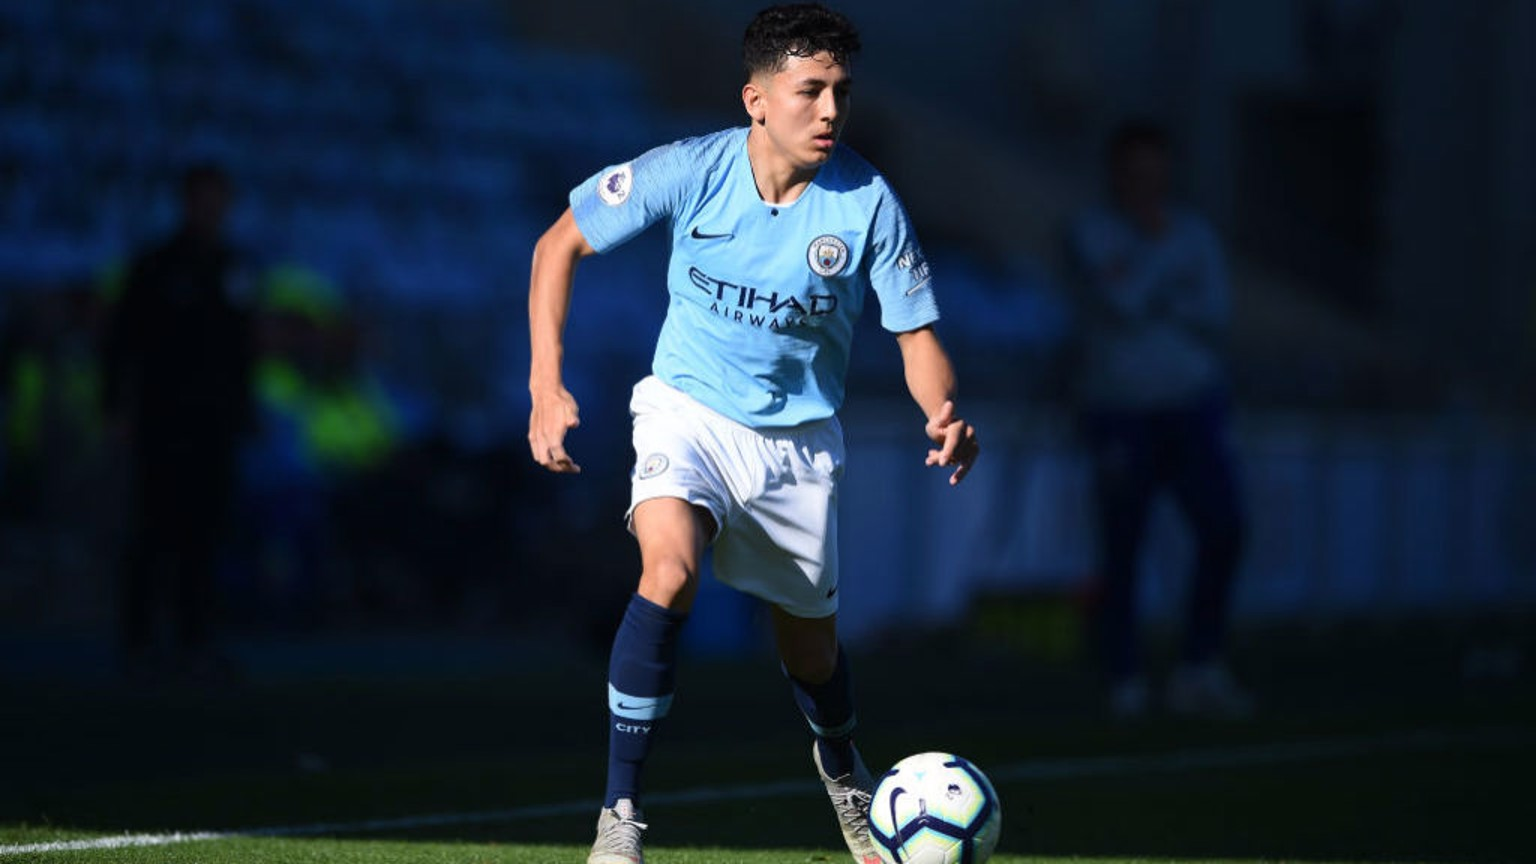 TARGET MAN: Ian Poveda's strike was enough to seal victory for City's EDS side at Derby